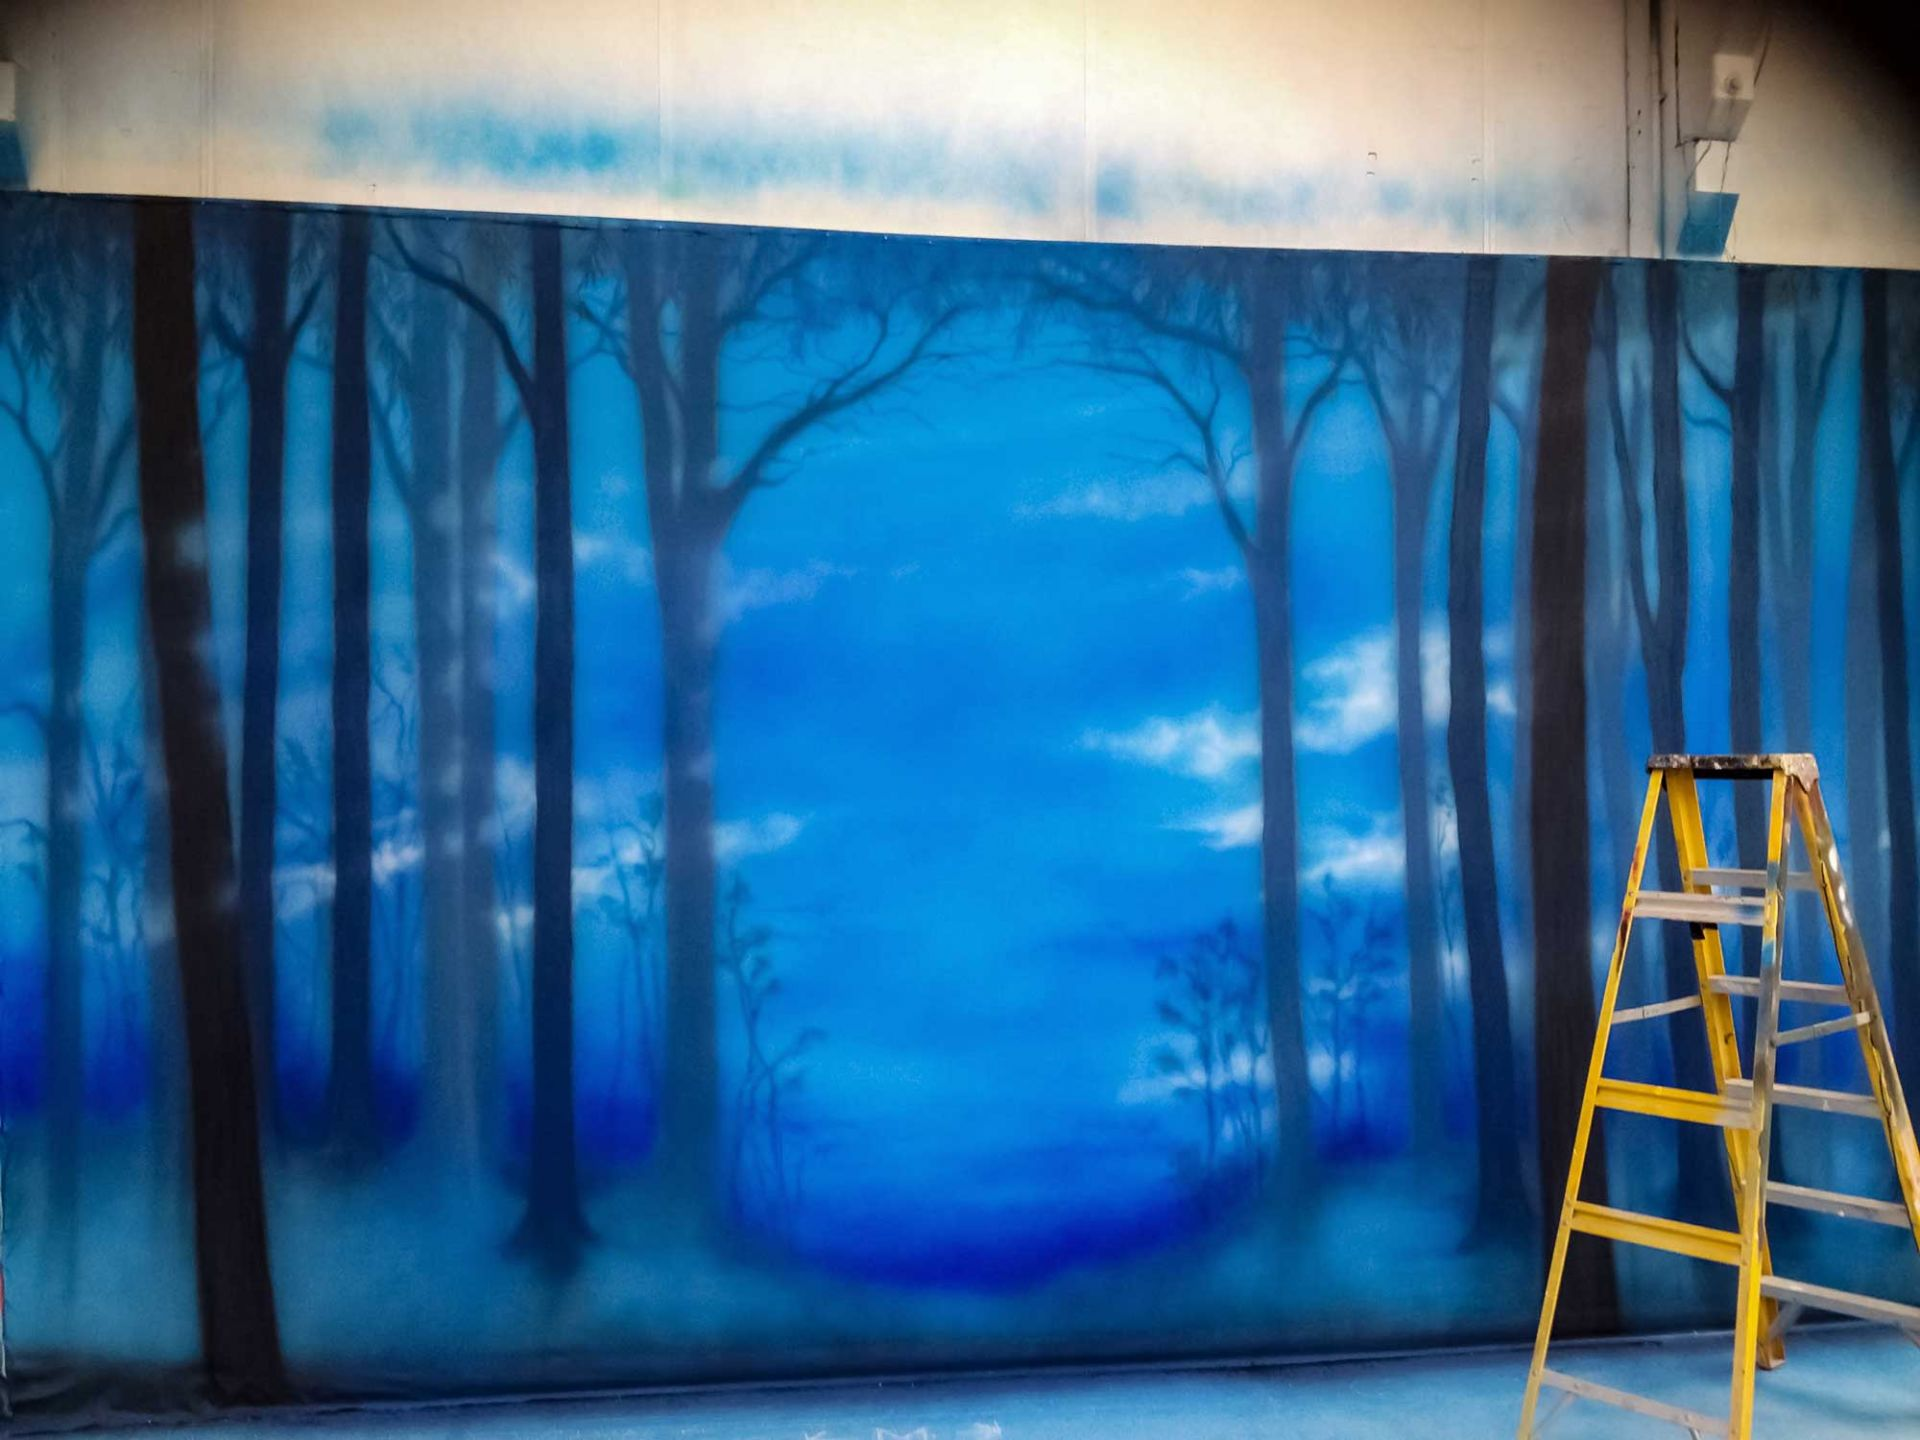 Blue scenic painting with dark trees fading into the background.